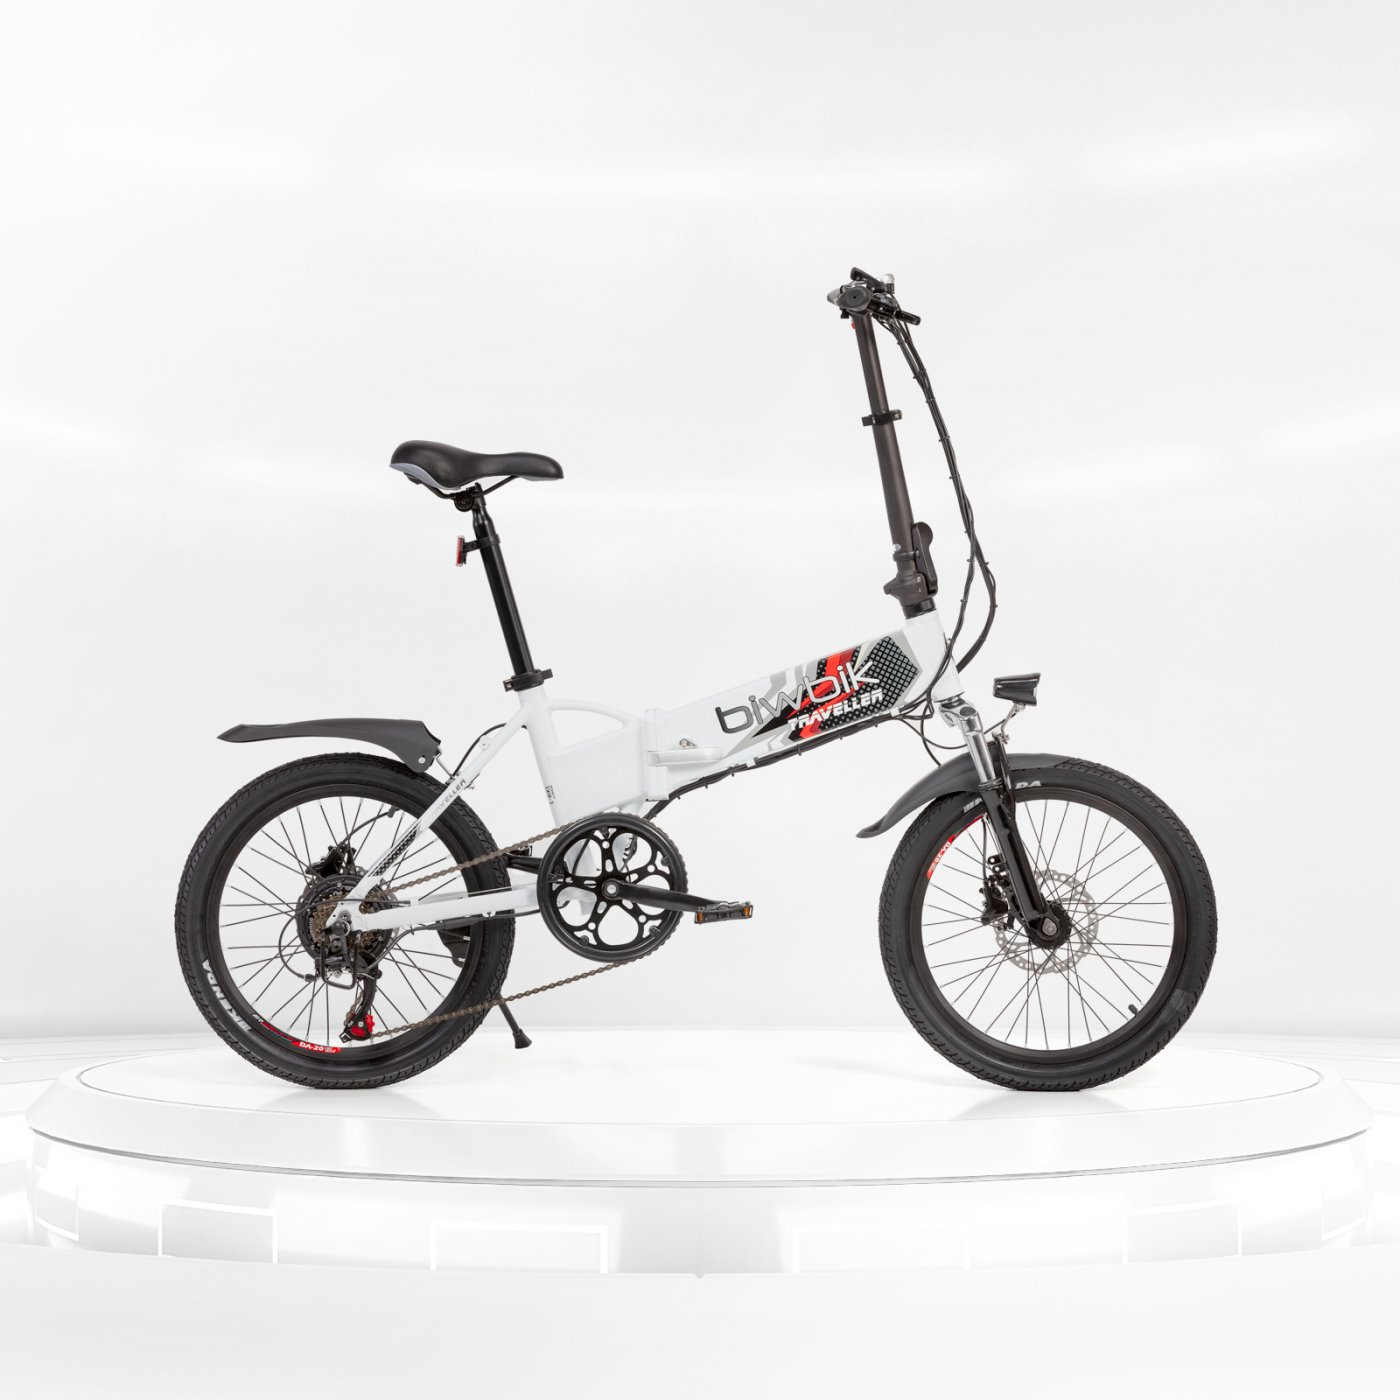 Biwbik Traveller white folding electric bike